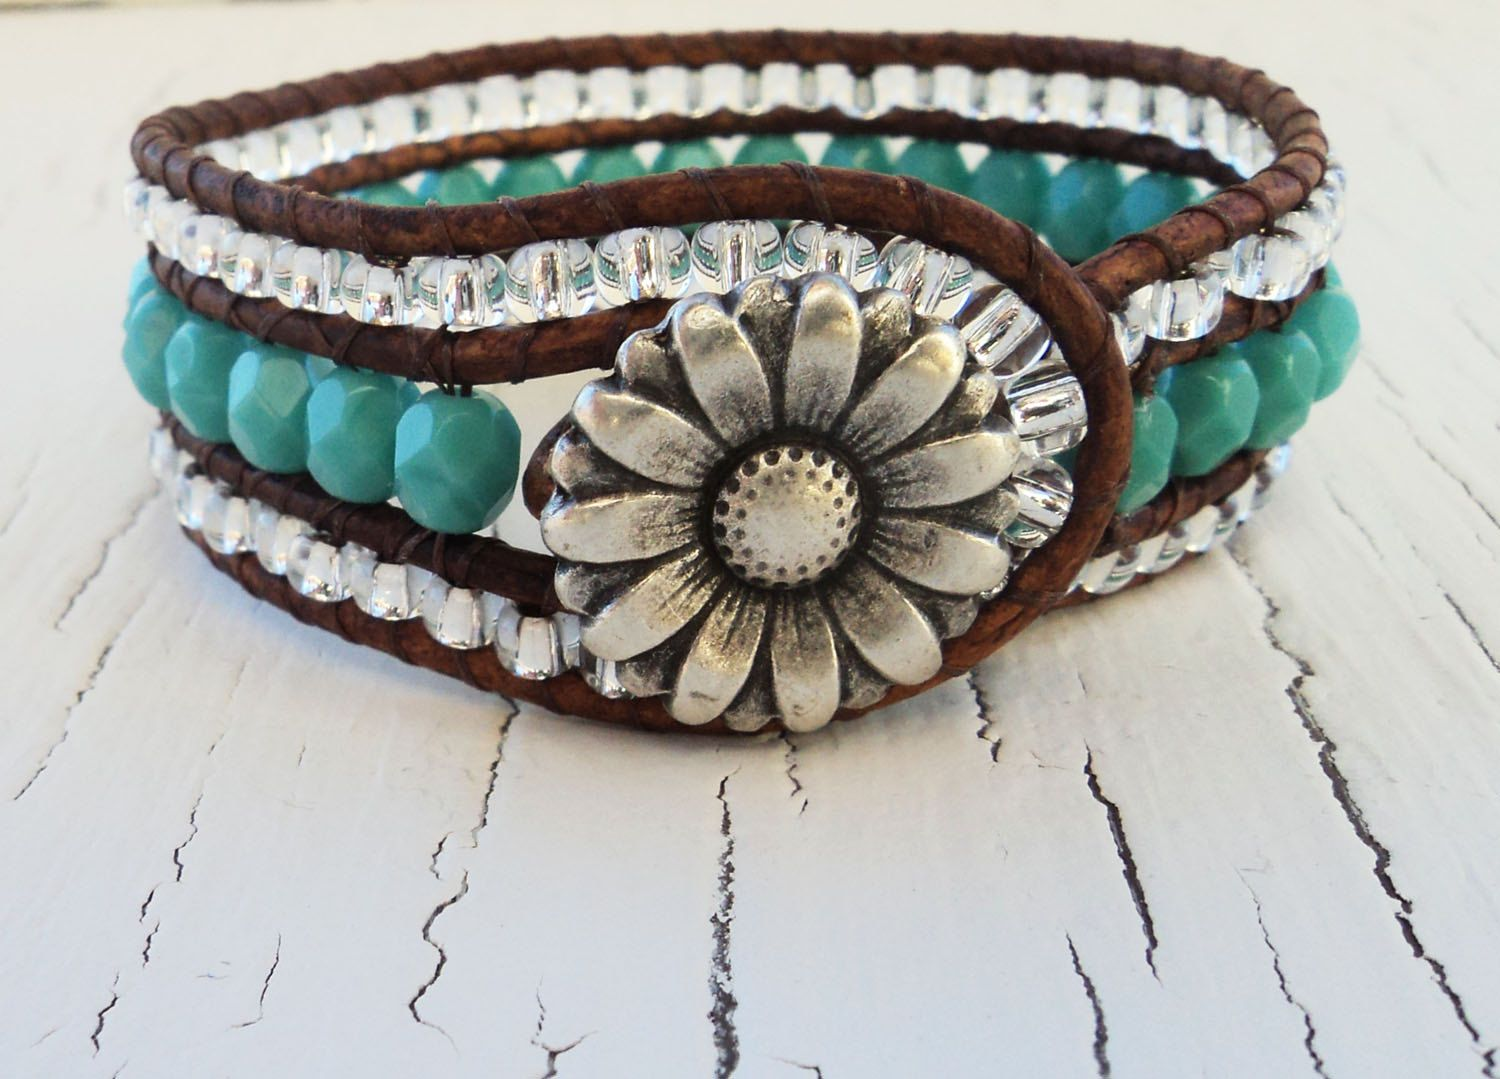 Cuff Bracelet, Turquoise Leather Cuff, Cowgirl Bracelet, Country Western  Jewelry, Beaded Leather Wrap Bracelet, Boho Bohemian Bracelet